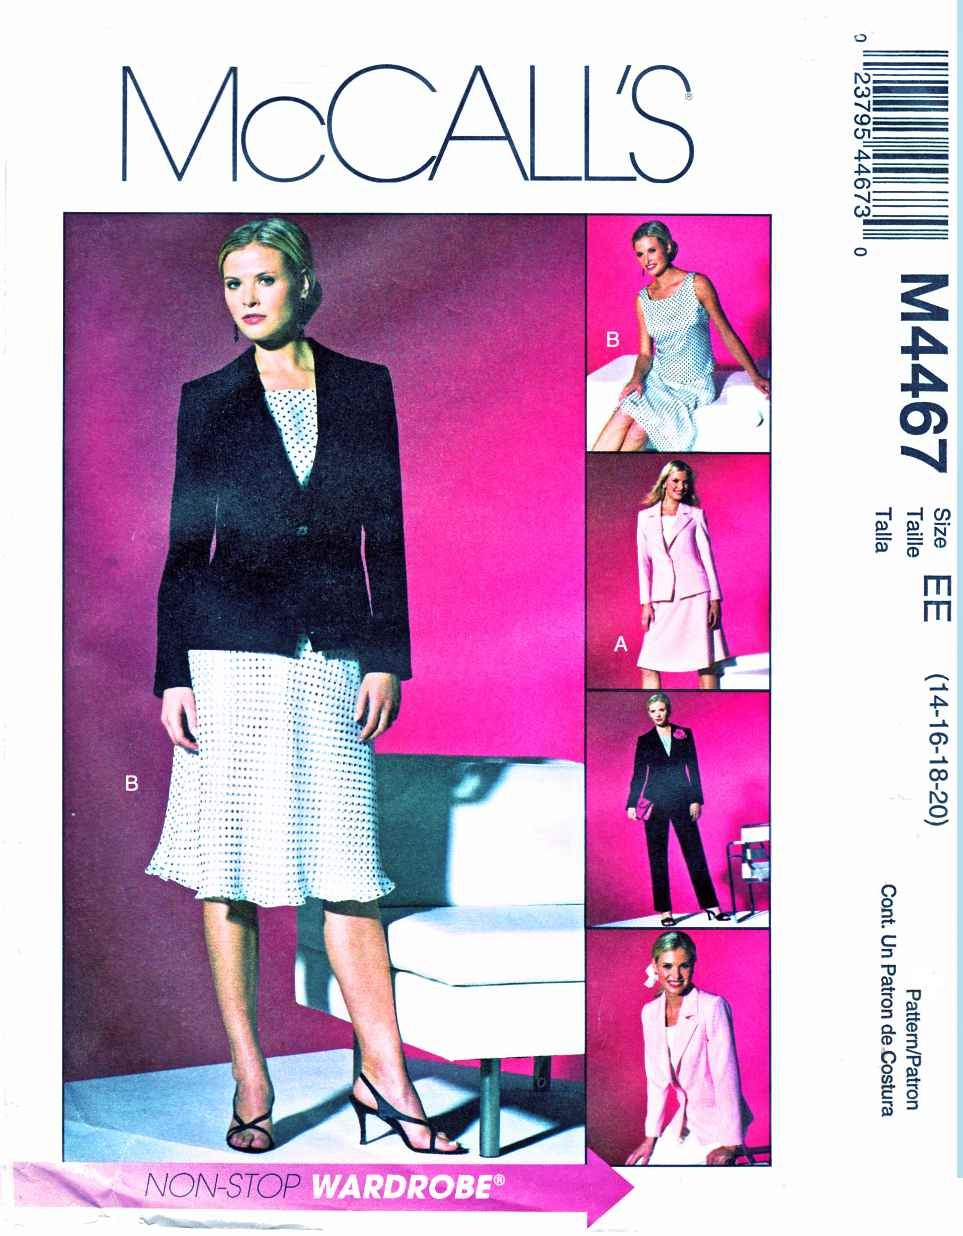 McCalls Sewing Pattern 4467 Misses Size 14-20 Wardrobe Lined Jacket Top Bias Skirt Pants